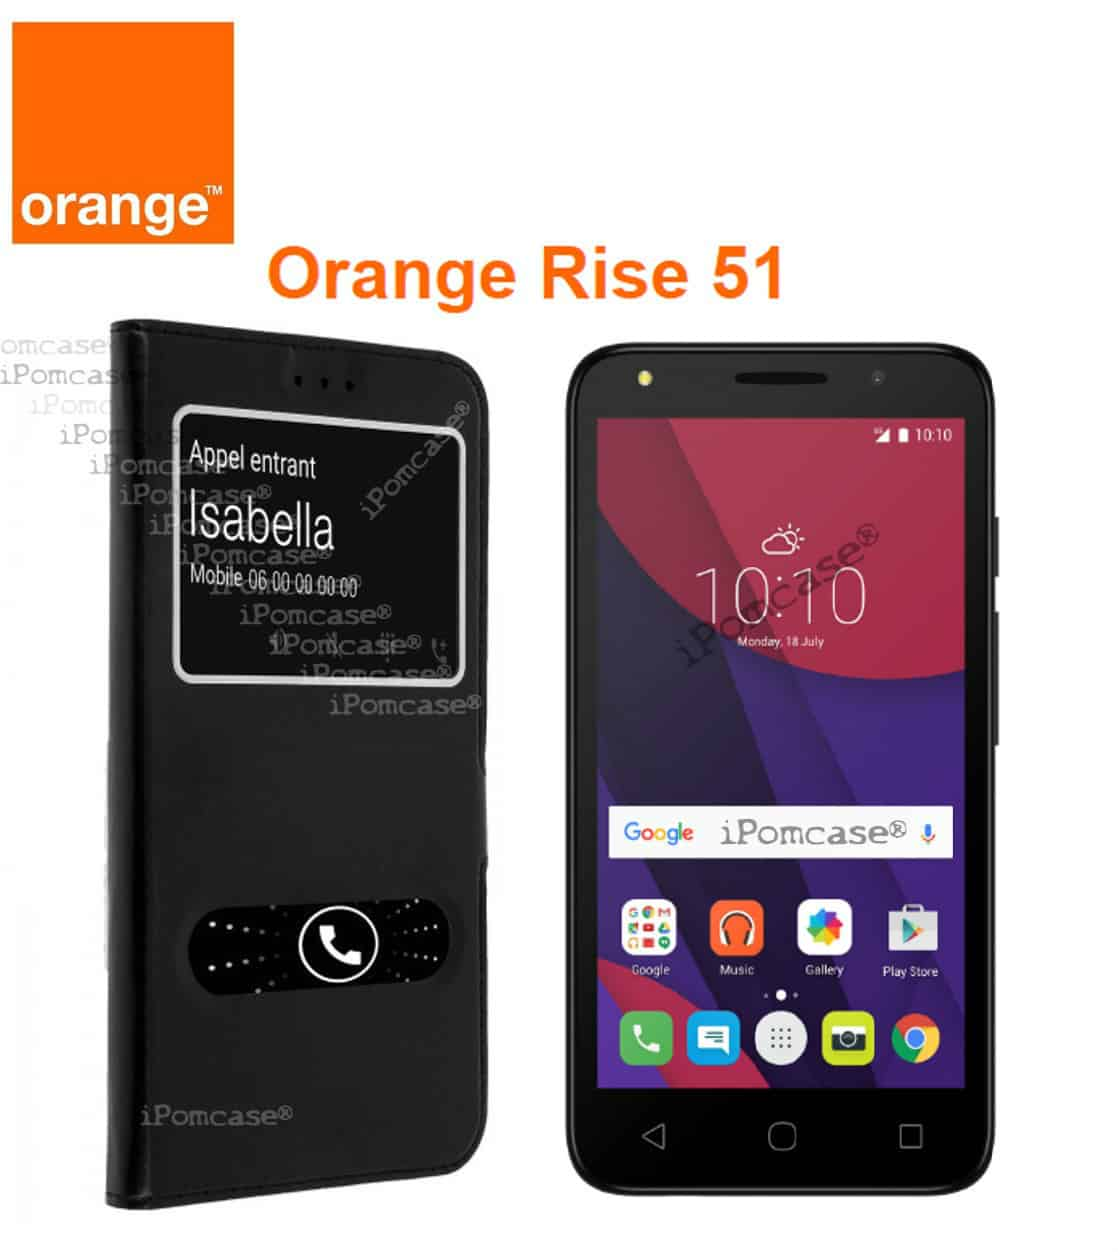 Coque Etui Décrochage Appel ORANGE RISE 51